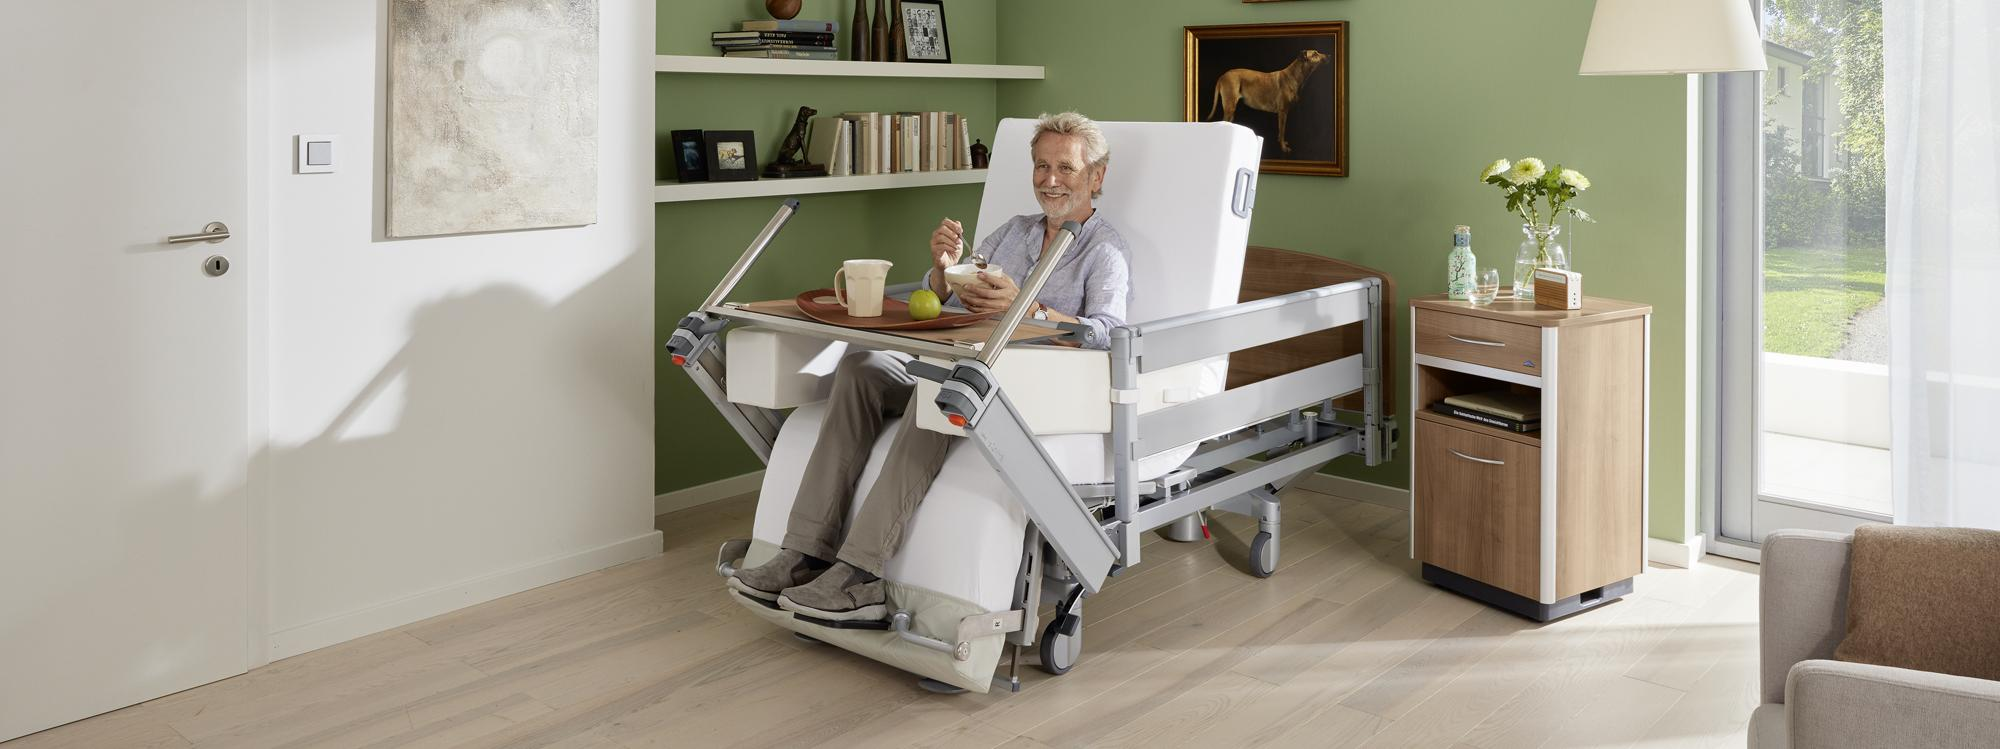 Making mealtimes easier in the Vertica care mobilisation bed